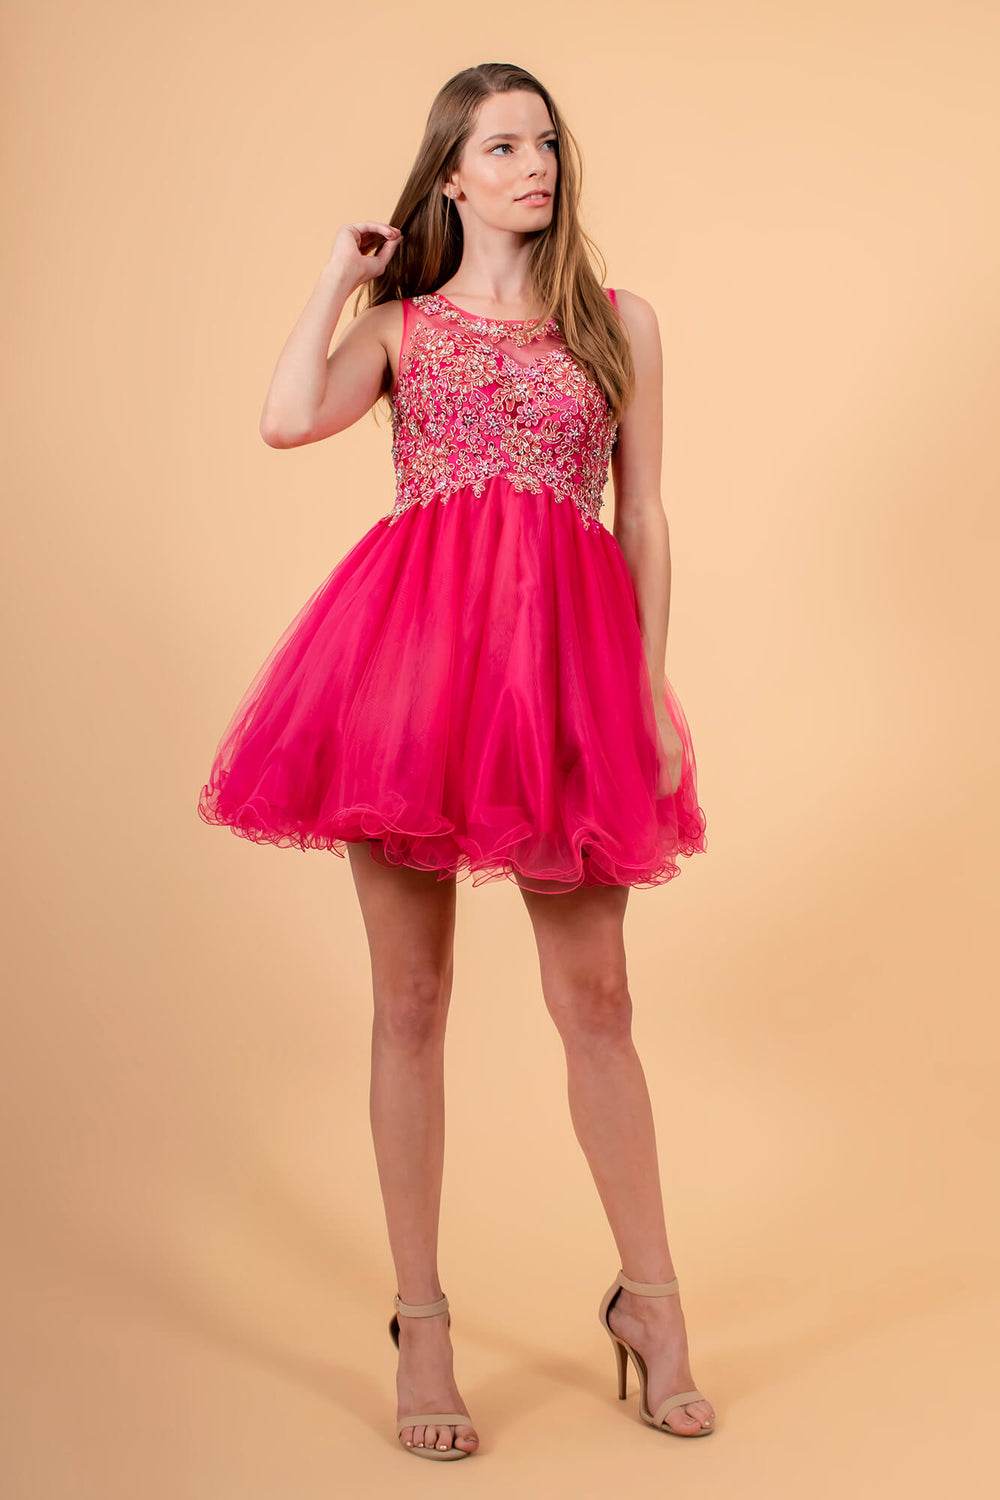 Sleeveless Short Prom Dress Homecoming - The Dress Outlet Fuchsia